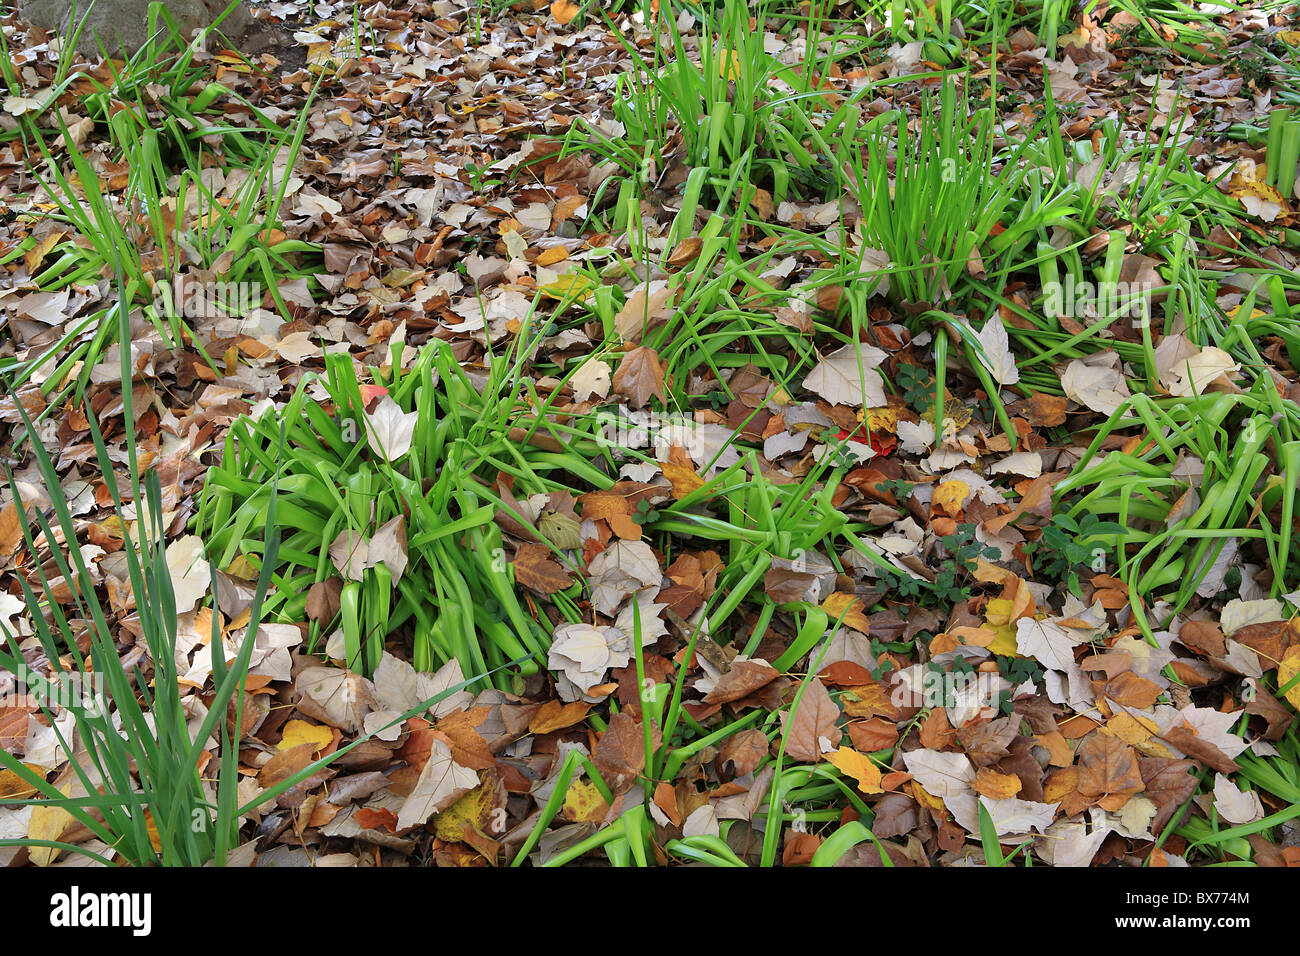 Detailed shot of Fall or Autumn undergrowth with multi-colored leaves surrounding bright green growth Stock Photo